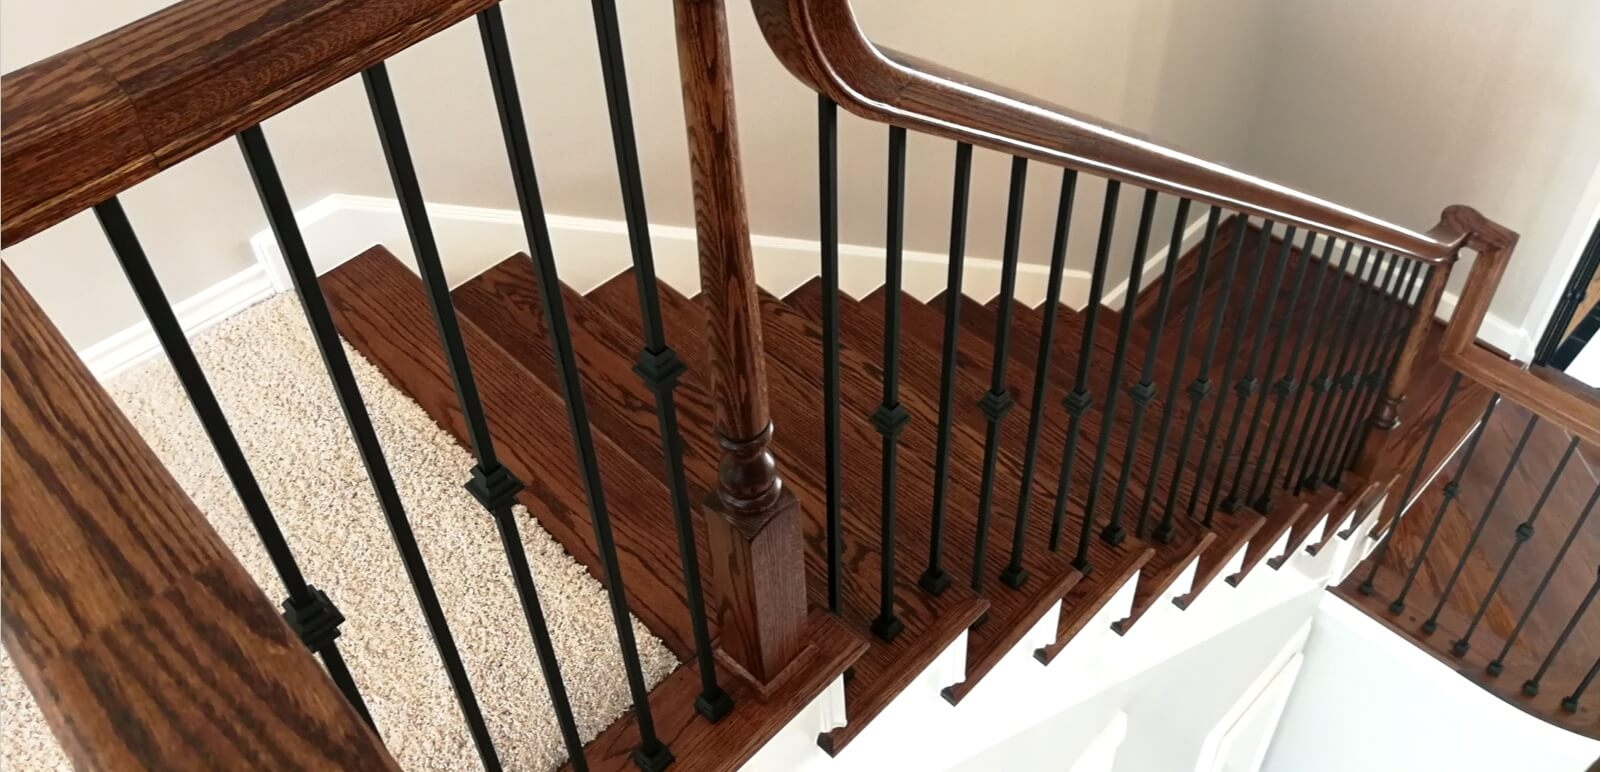 Houston Stair Parts Stair Remodel Iron Balusters Railing   Installing Wrought Iron Railings On Stairs   Railing Kits   Concrete Steps   Iron Balusters   Outdoor Stair   Stair Spindles